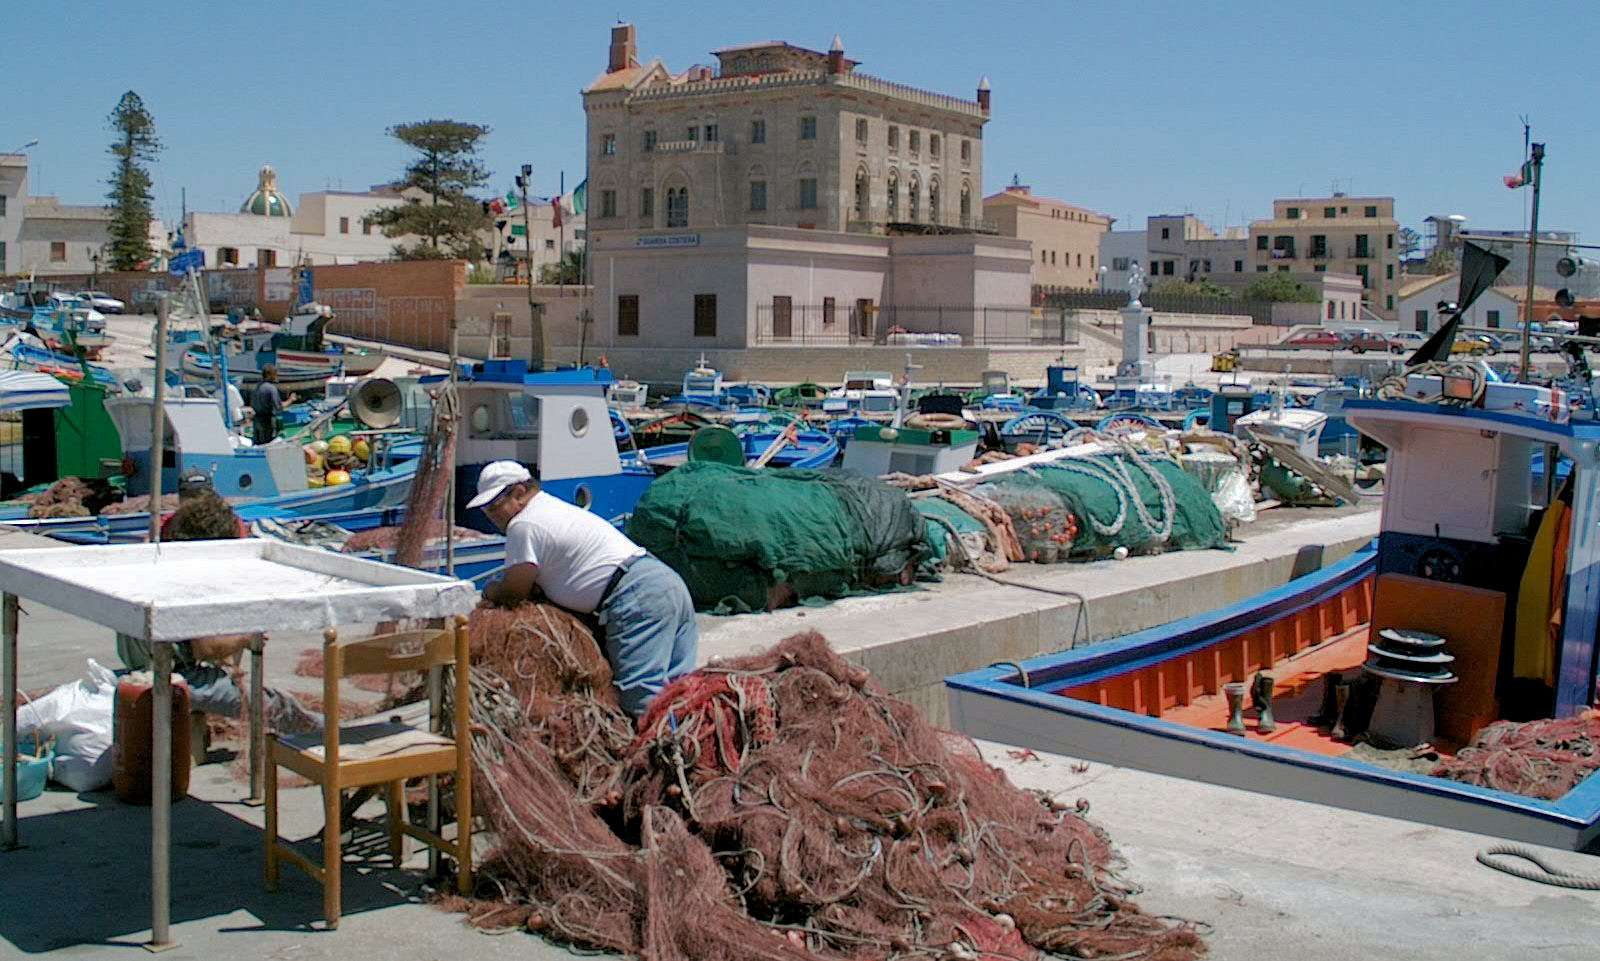 Favignana Hotel Sicily Luxury Hotel Chic Retreat And Tour In Favignana